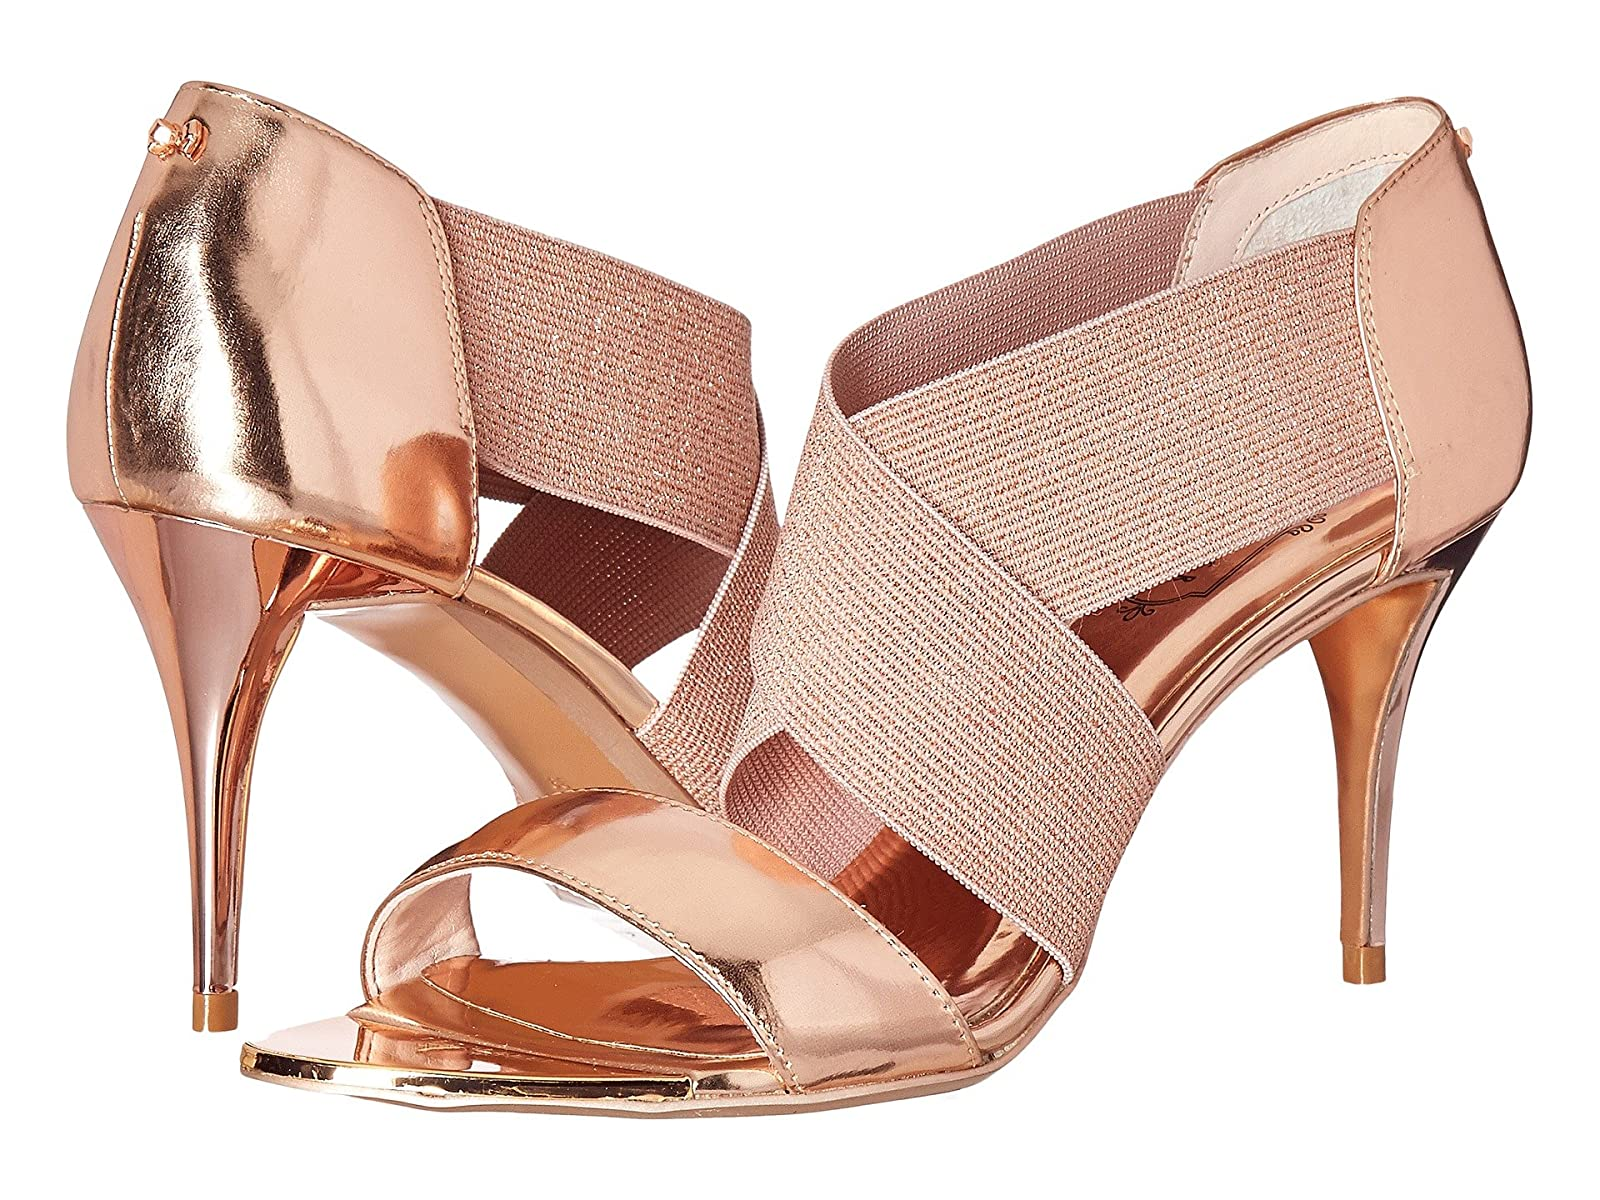 Ted Baker LeniyaCheap and distinctive eye-catching shoes